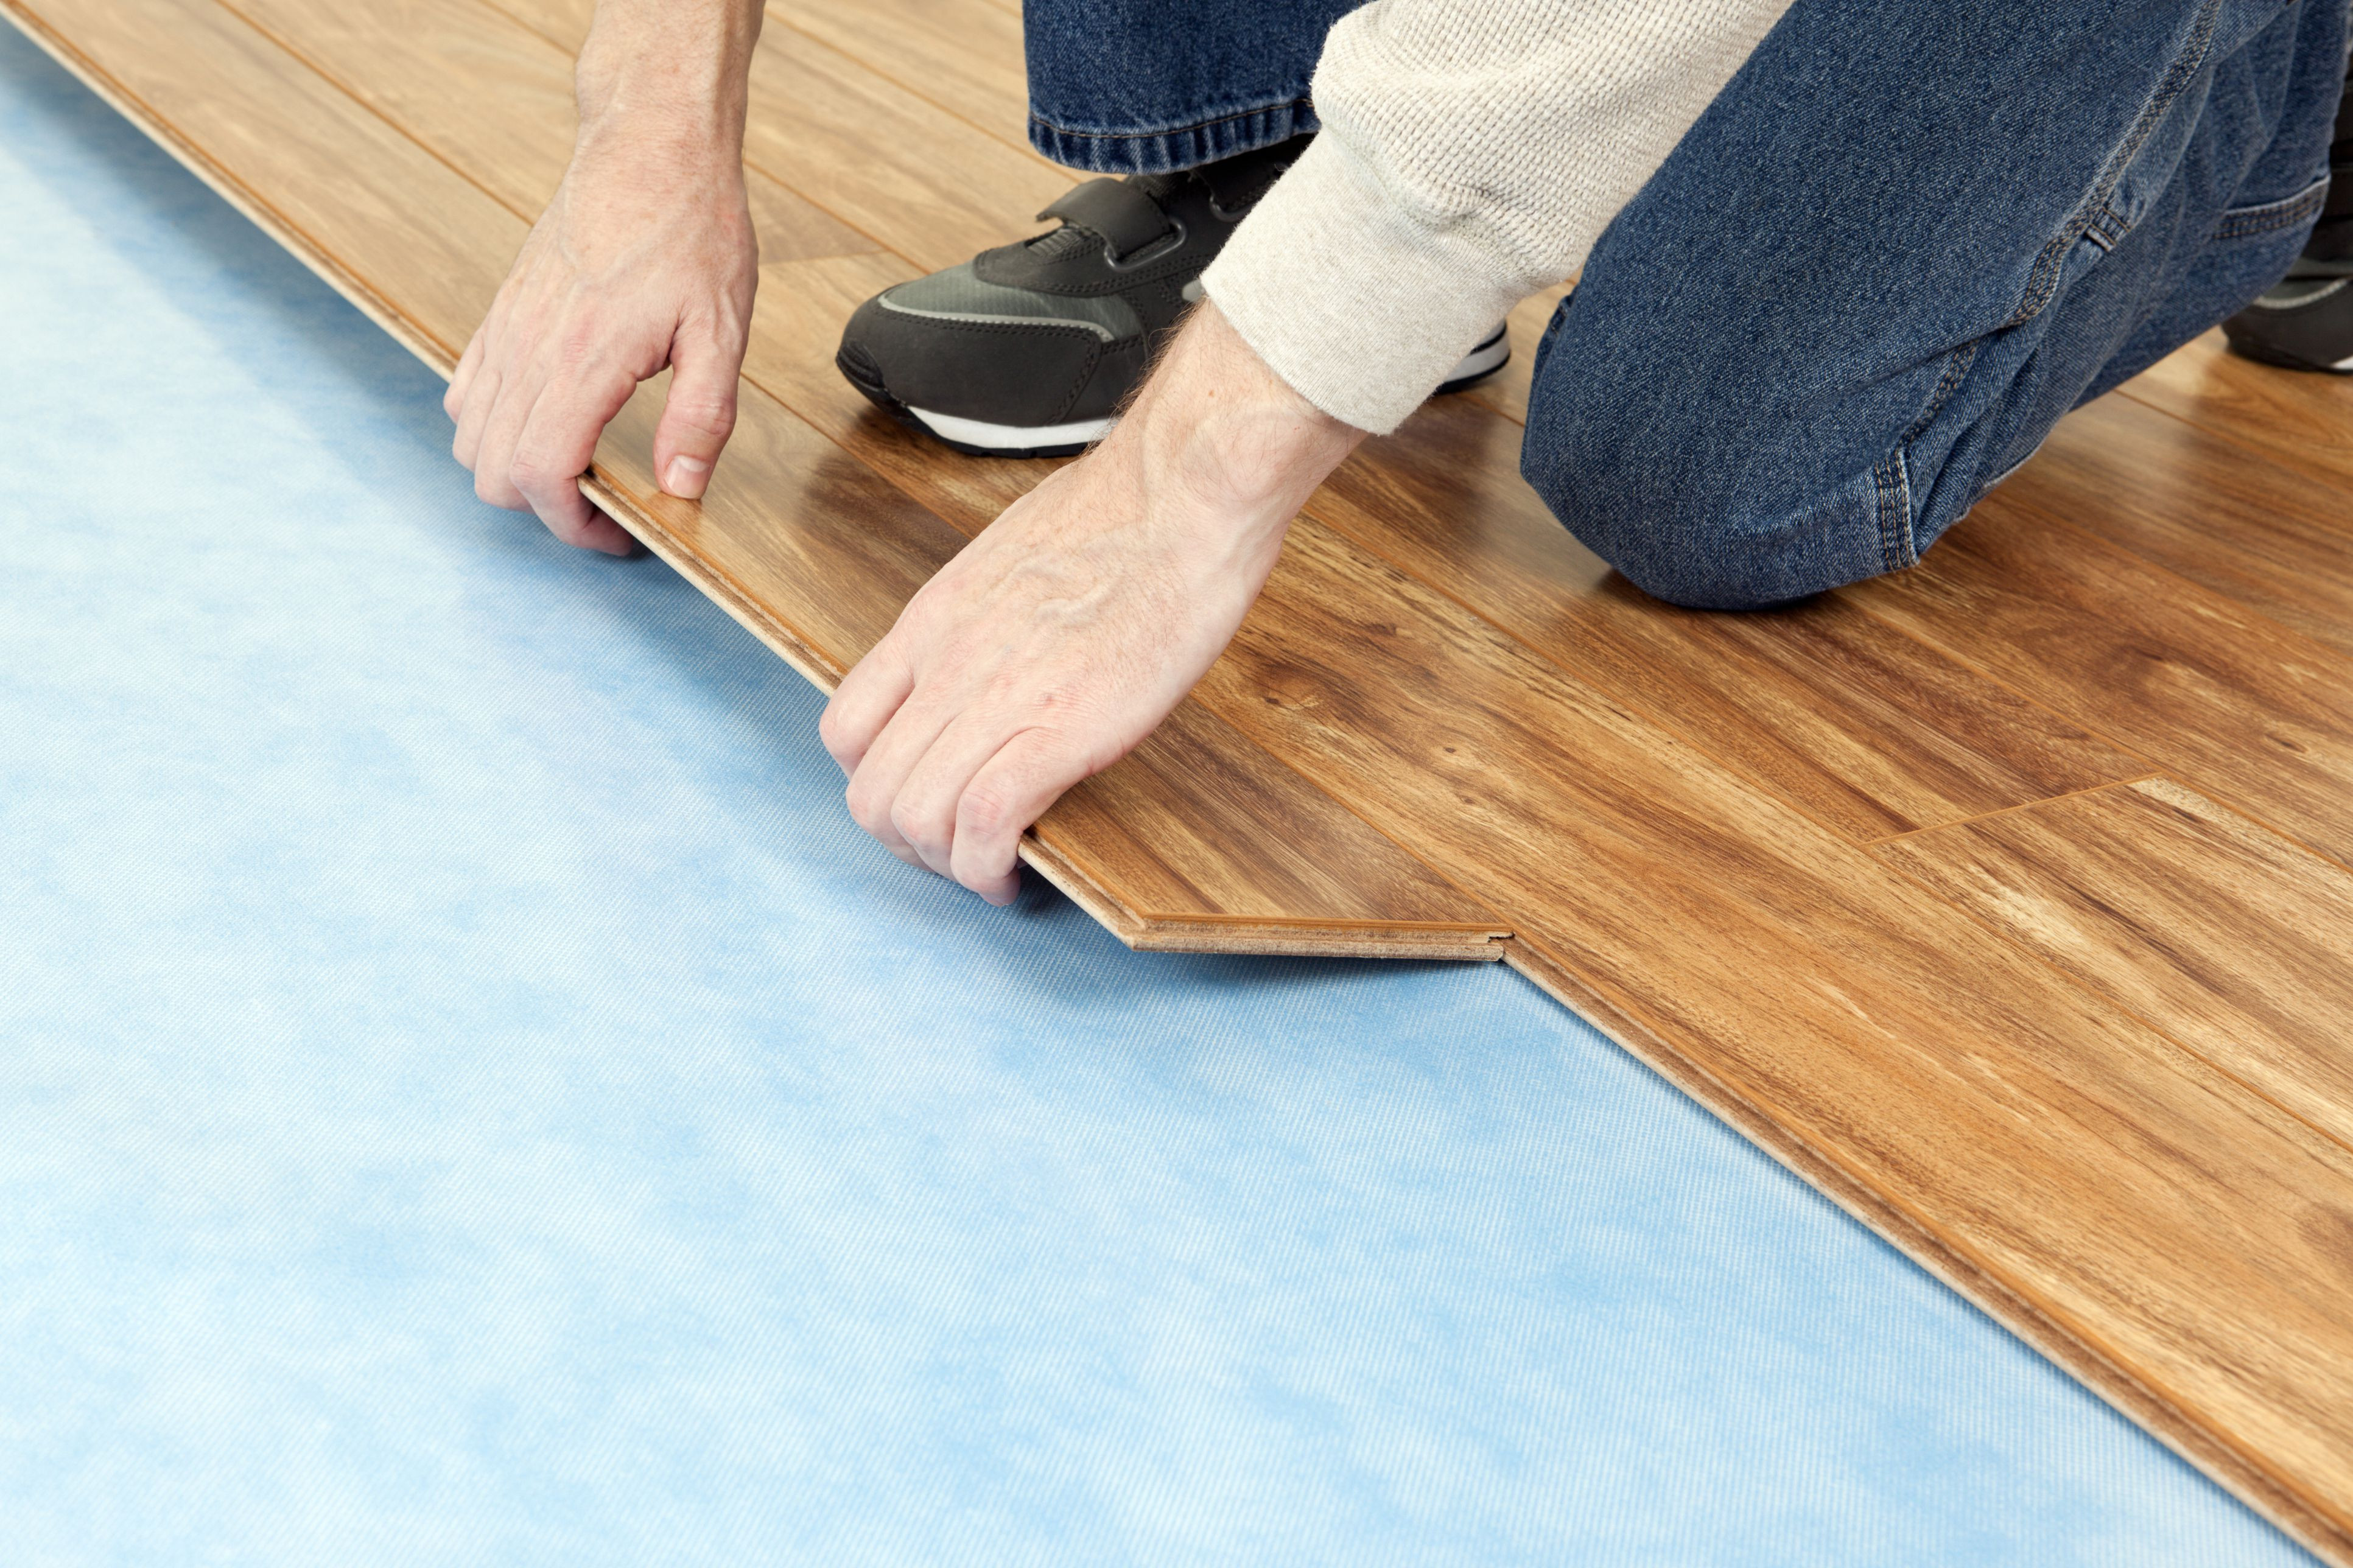 hardwood flooring installation guidelines of flooring underlayment the basics in new floor installation 185270632 582b722c3df78c6f6af0a8ab